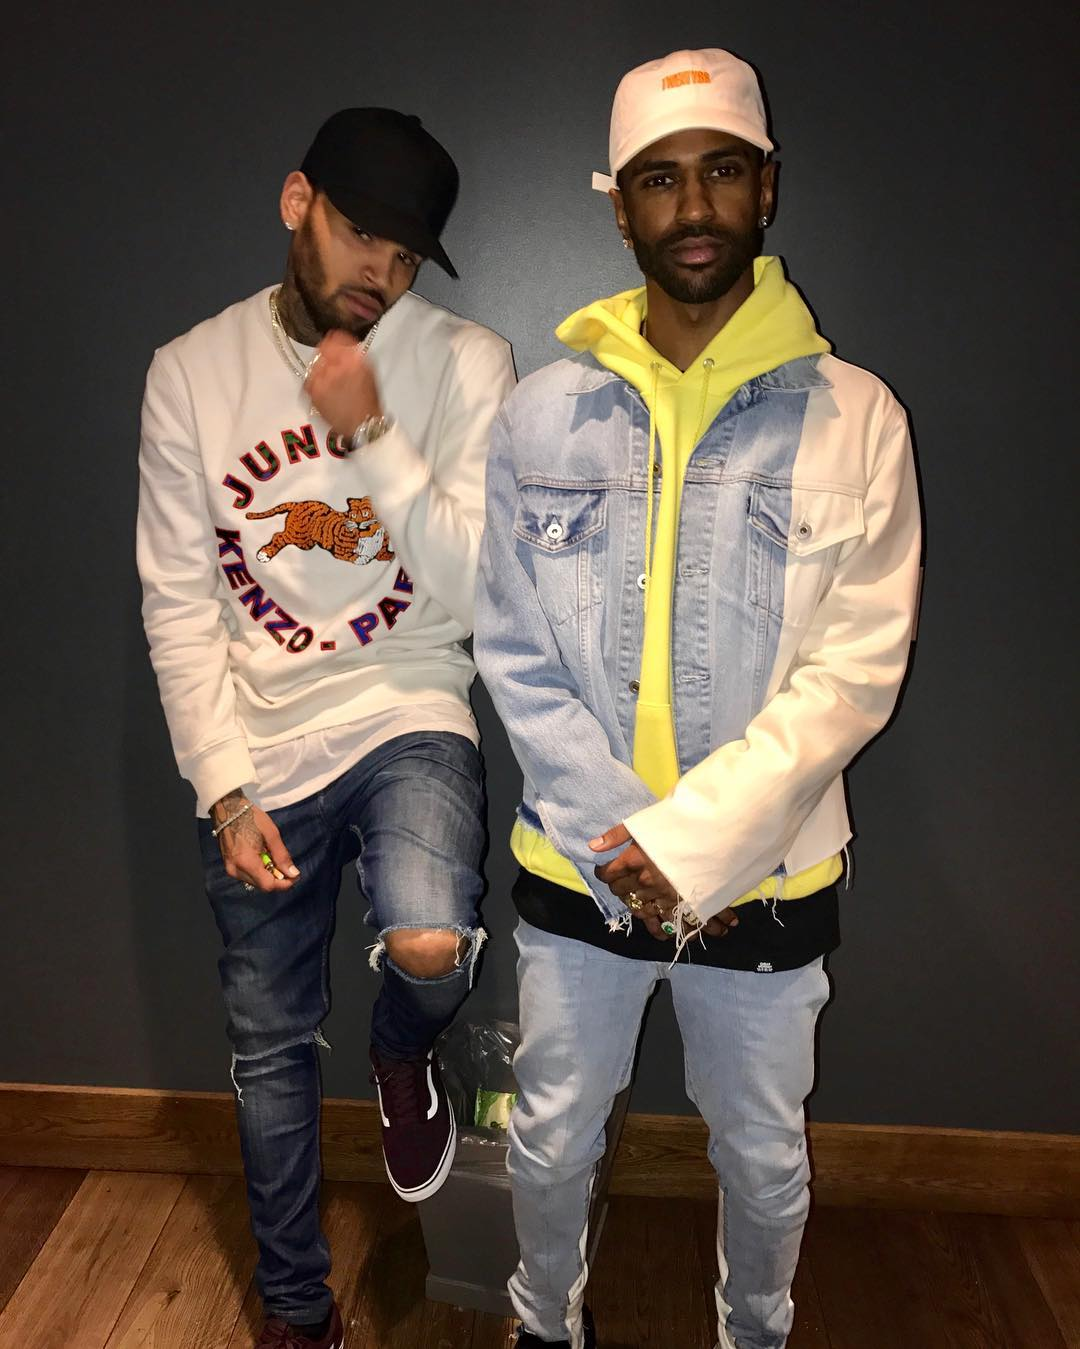 SPOTTED: Big Sean In OFF-WHITE x Levi's + Chris Brown In Kenzo x H&M